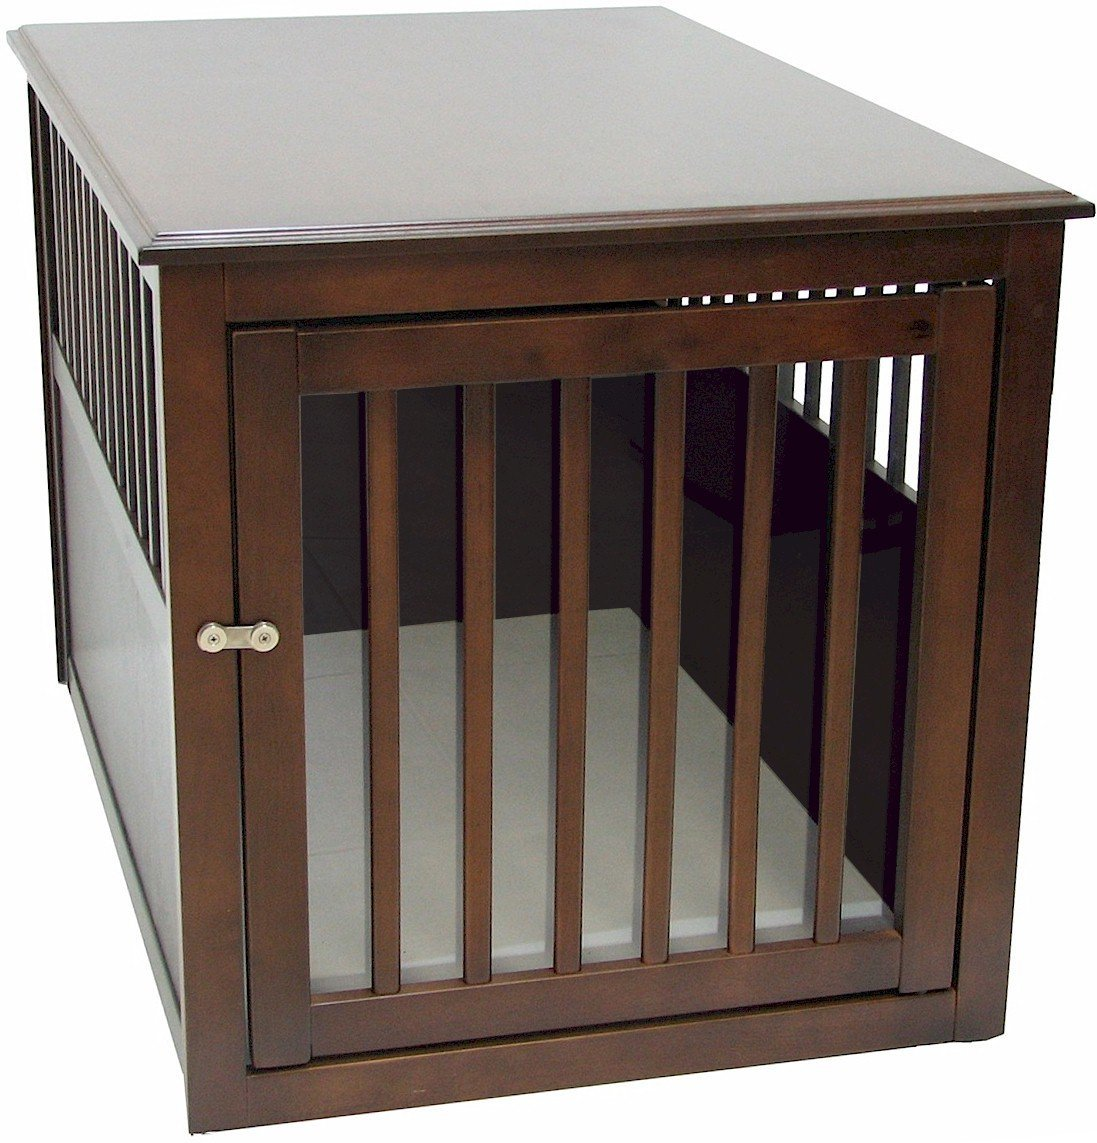 crown pet products crate wood dog furniture small end table large size with espresso finish supplies outdoor wicker accent dining sofa kmart living room well made bedroom oriental